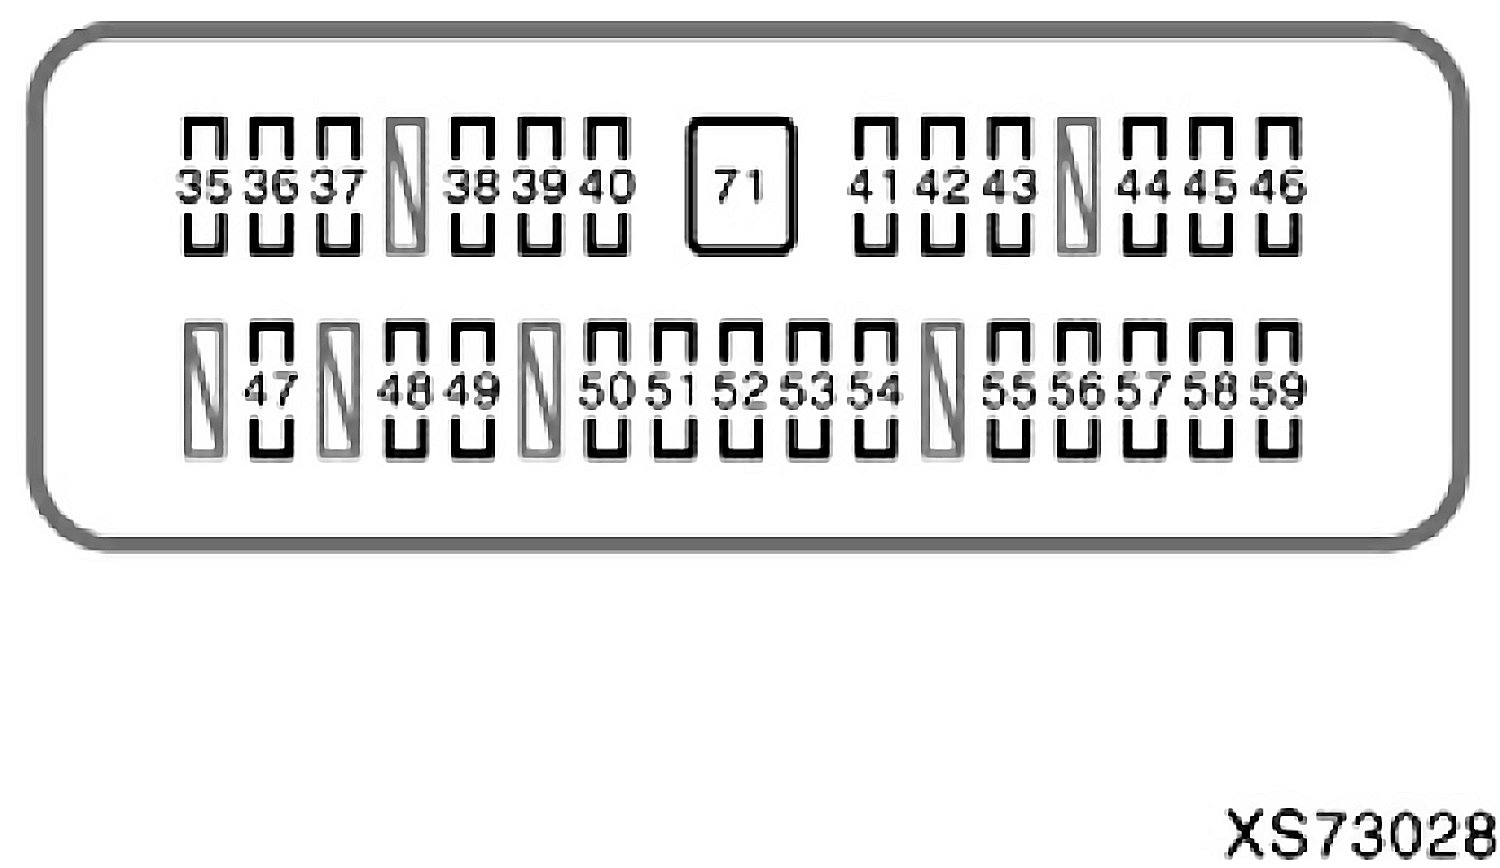 hight resolution of 2007 toyota tundra fuse box location